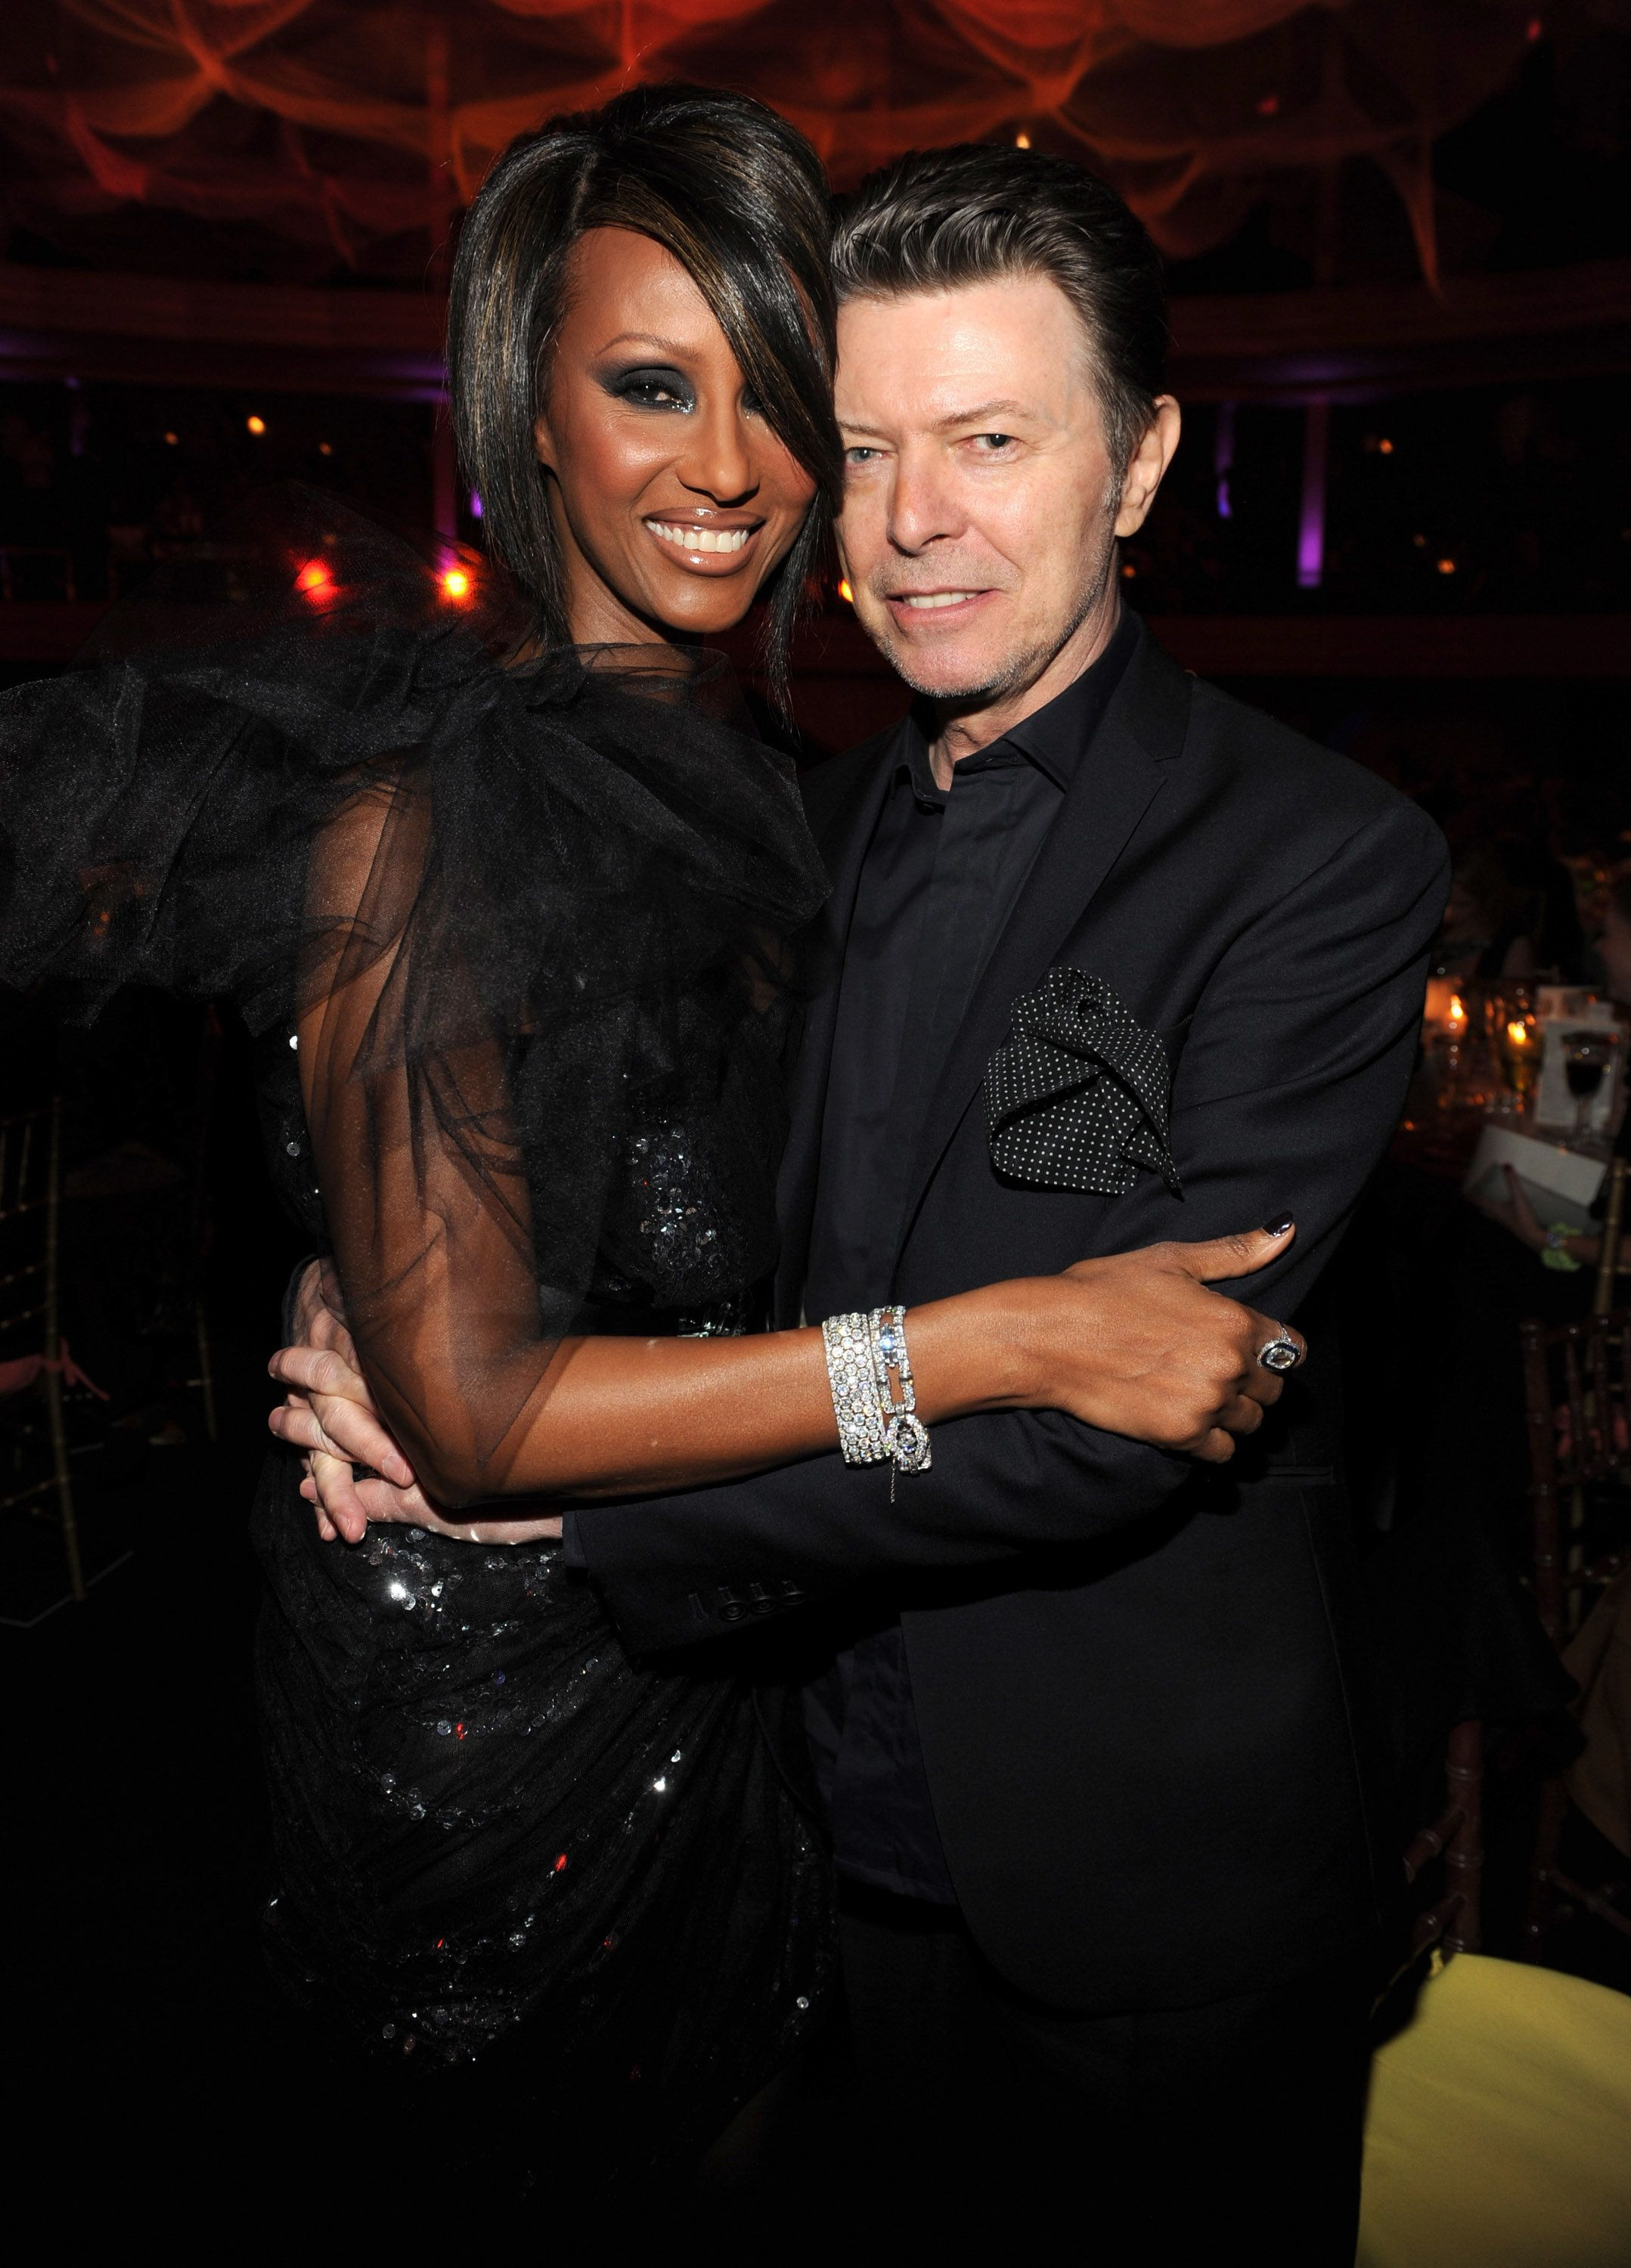 *Exclusive* Iman and David Bowie at Hammerstein Ballroom during Keep A Child Alive's 6th Annual Black Ball hosted by Alicia Keys and Padma Lakshmi on October 15, 2009 in New York City. ***Exclusive*** (Photo by Kevin Mazur/WireImage)